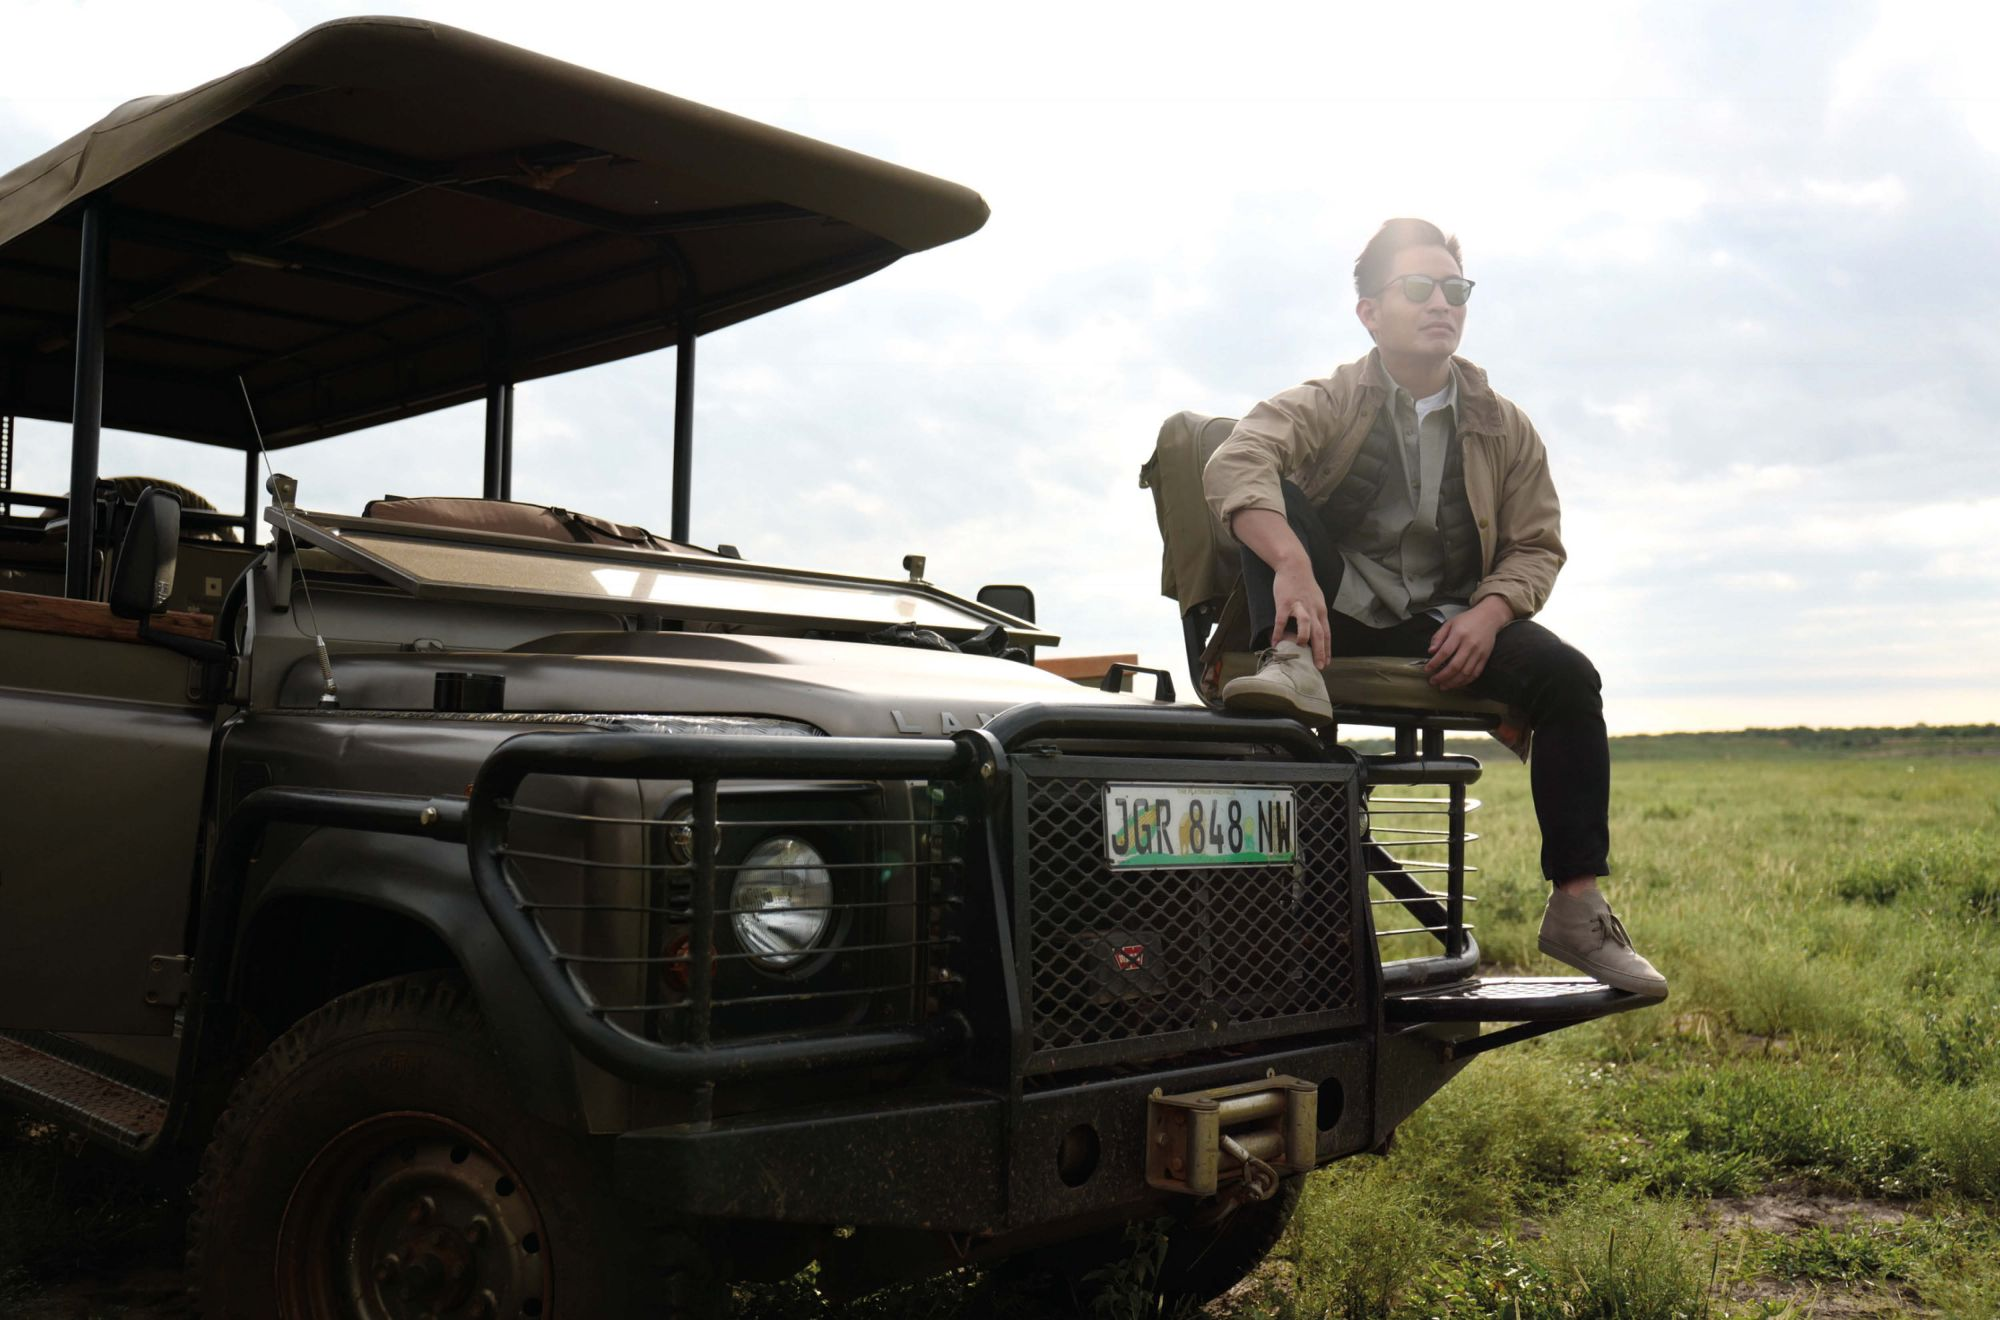 Dream Destinations: Rhino Tagging In South Africa With Ivan Pun